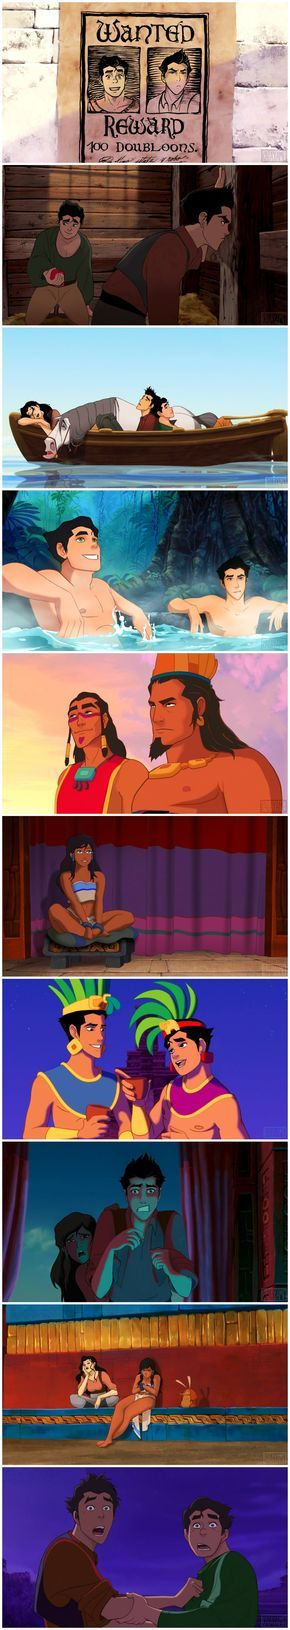 Legend of Korra - The Road to El Dorado parody soooo I'm guessing Korra n Maka did.... Uk..... The thing....